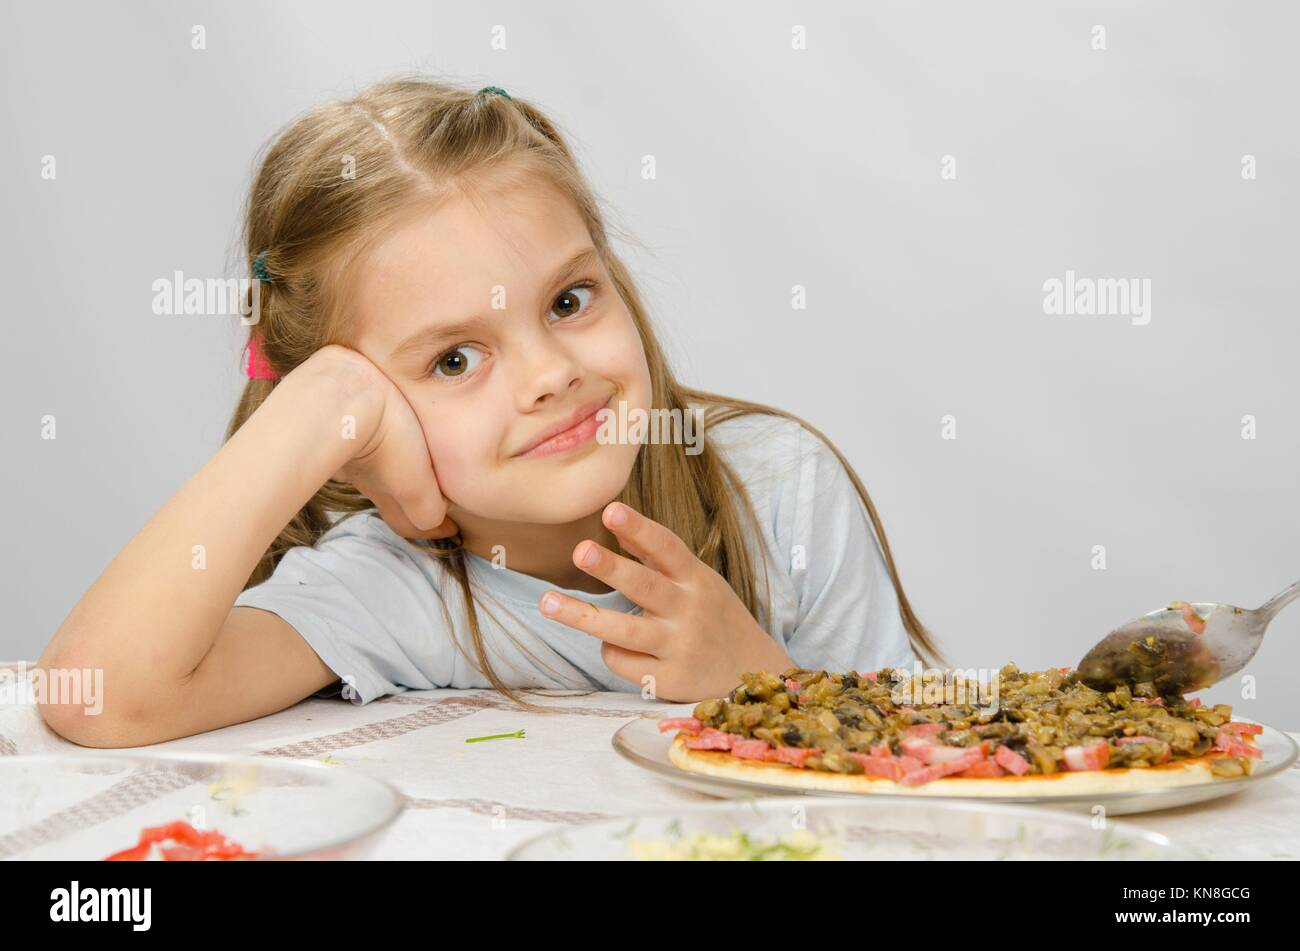 (10 Year Old Girl) Old House Stock Photos & (10 Year Old